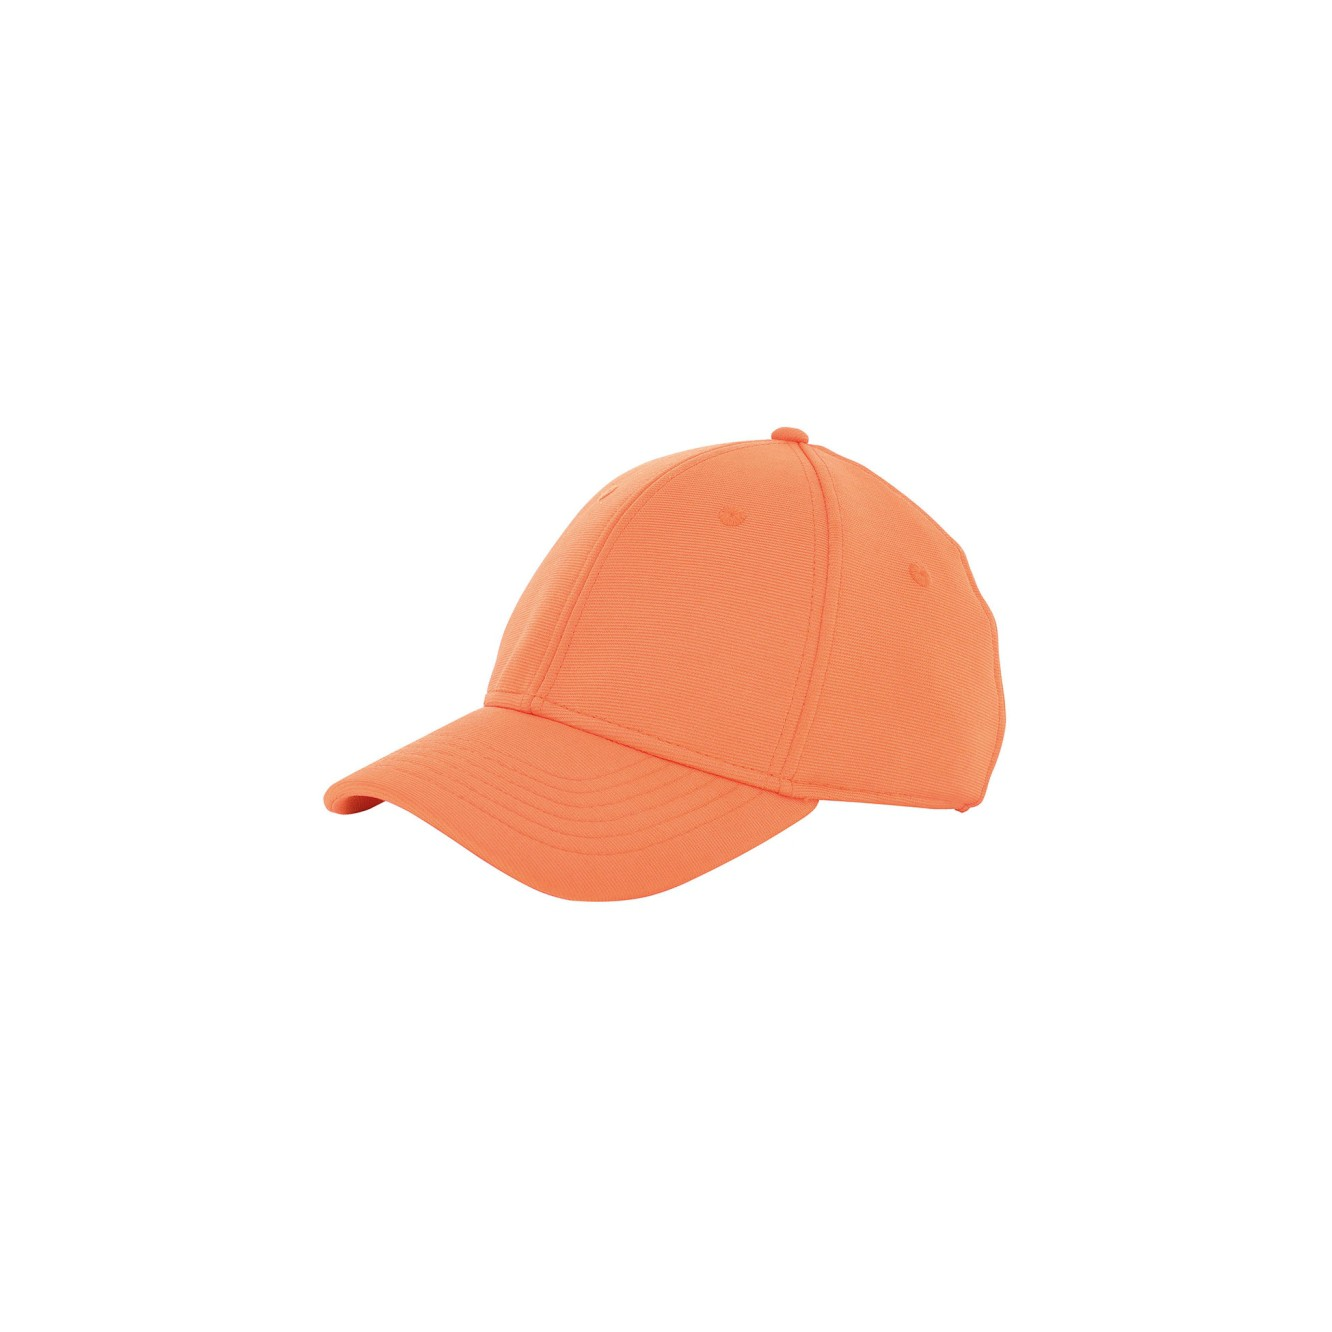 Flexfit cap curved peak